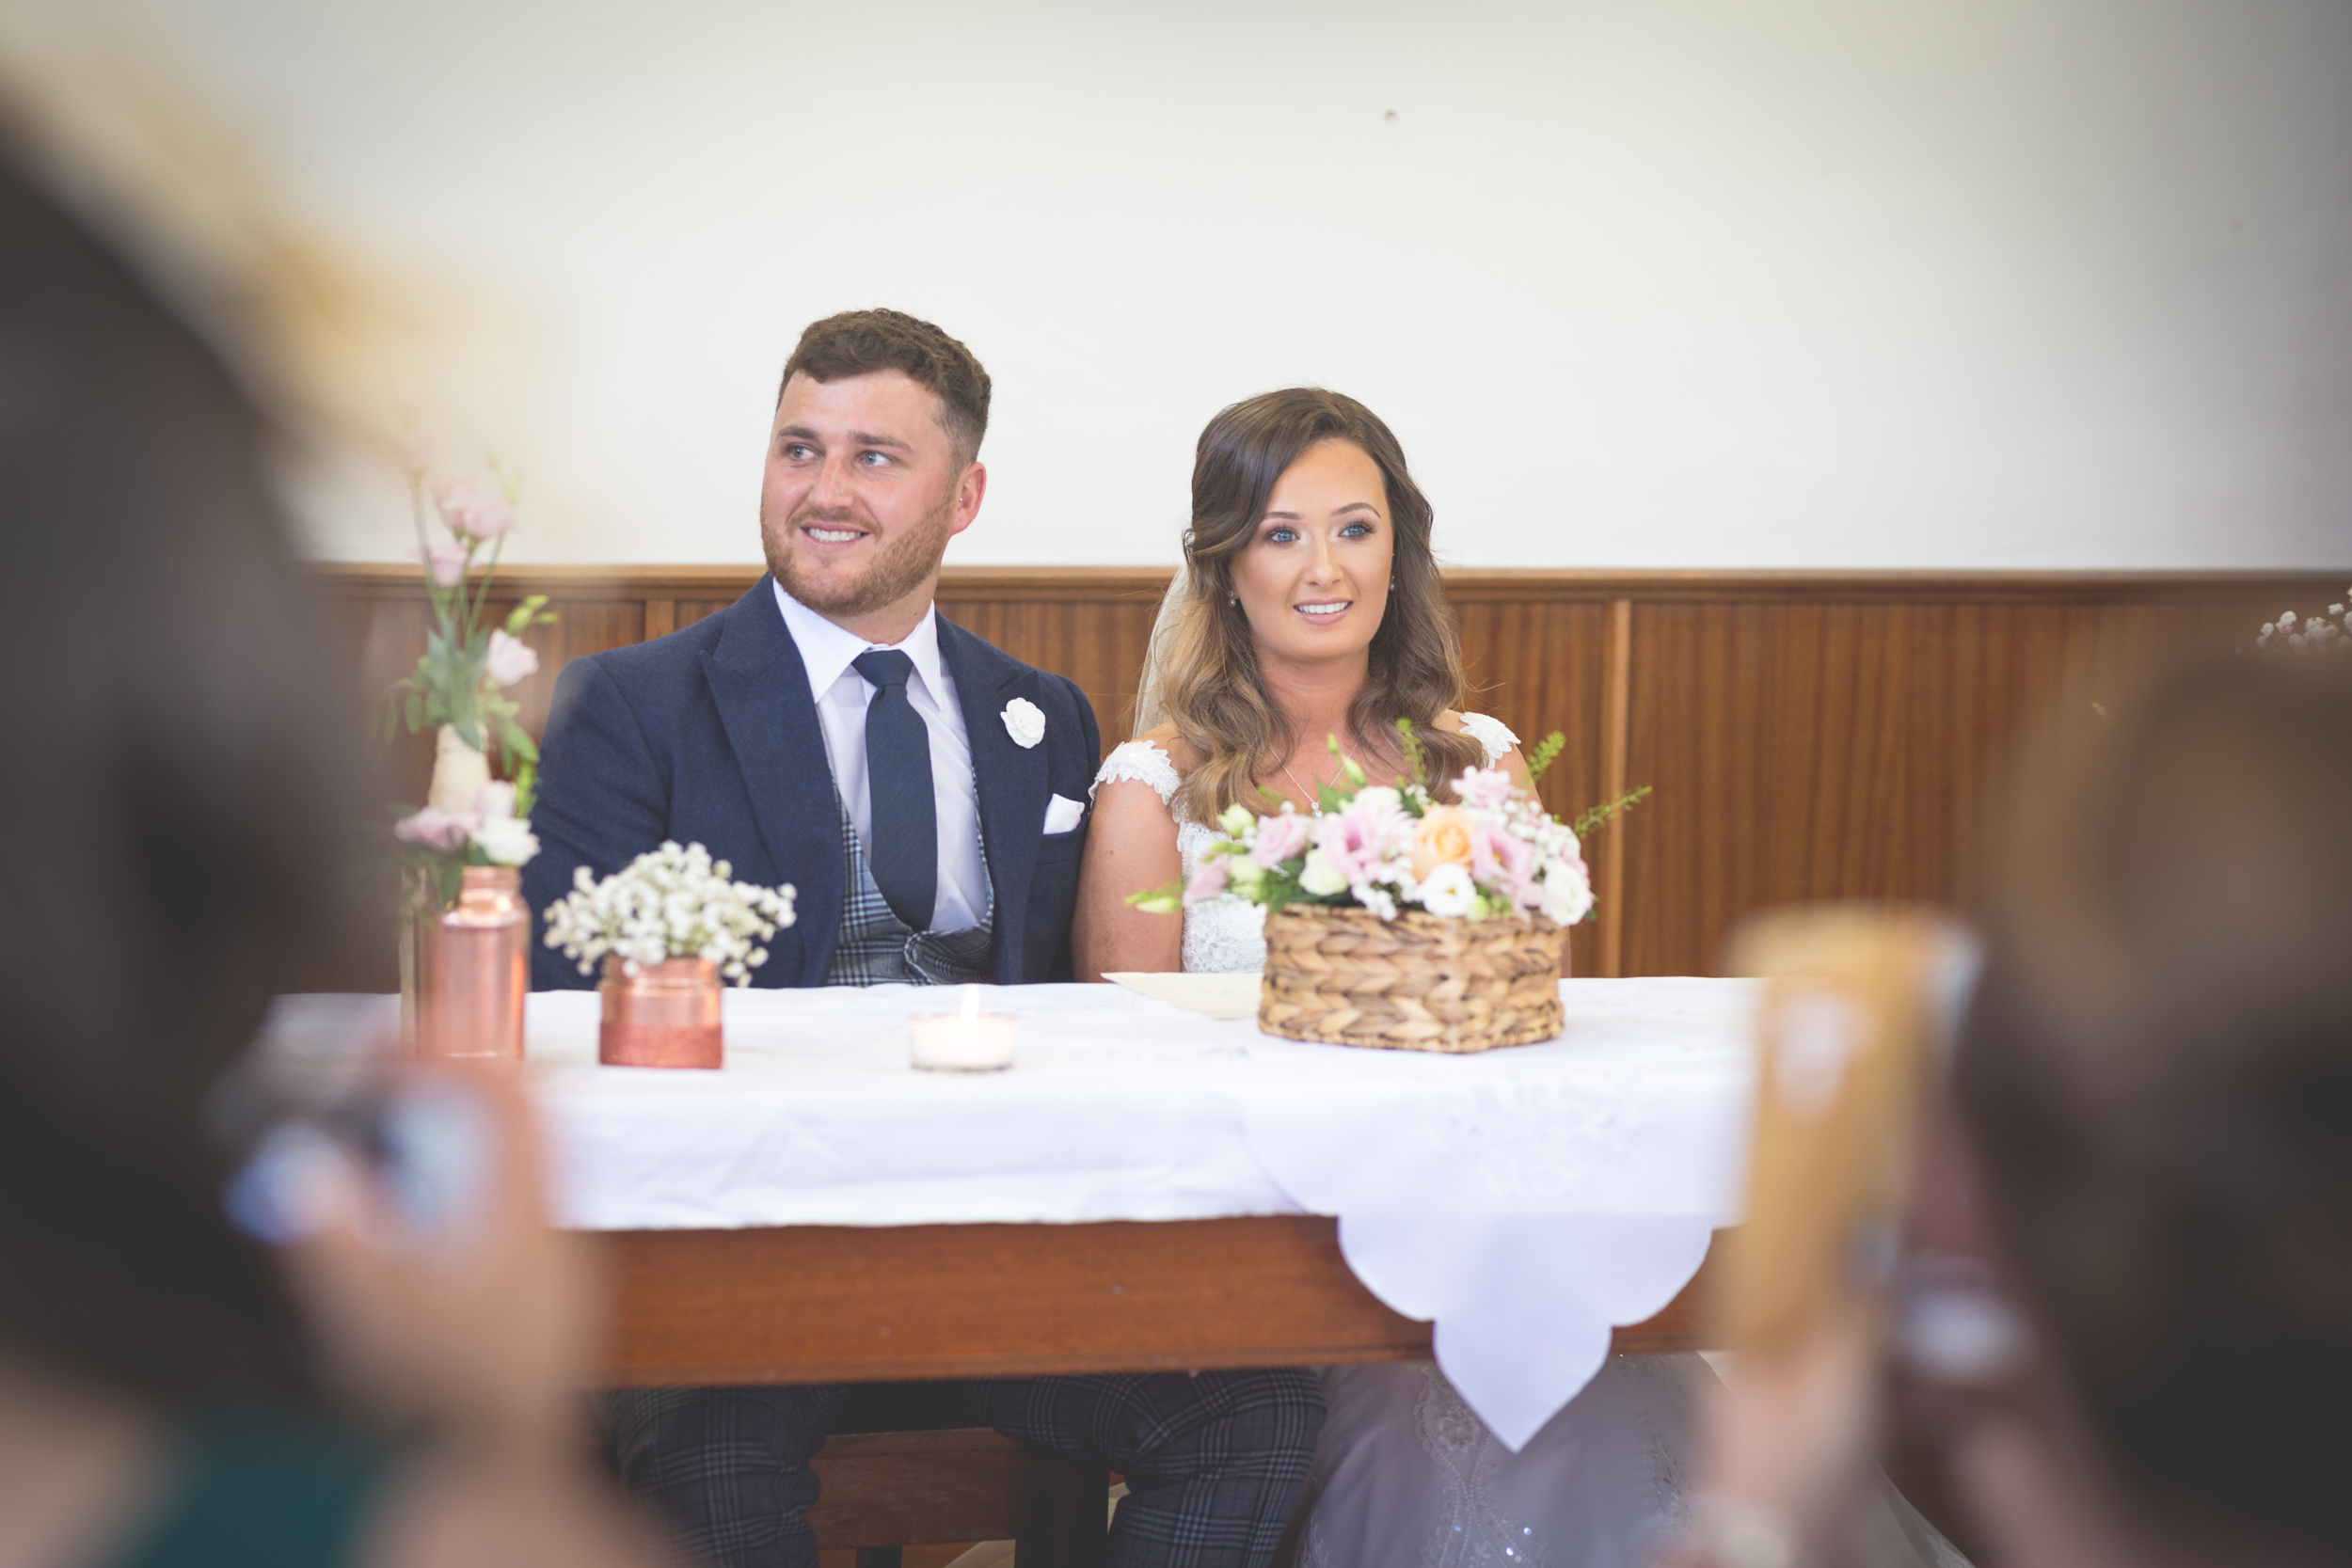 Brian McEwan | Northern Ireland Wedding Photographer | Rebecca & Michael | Ceremony-97.jpg